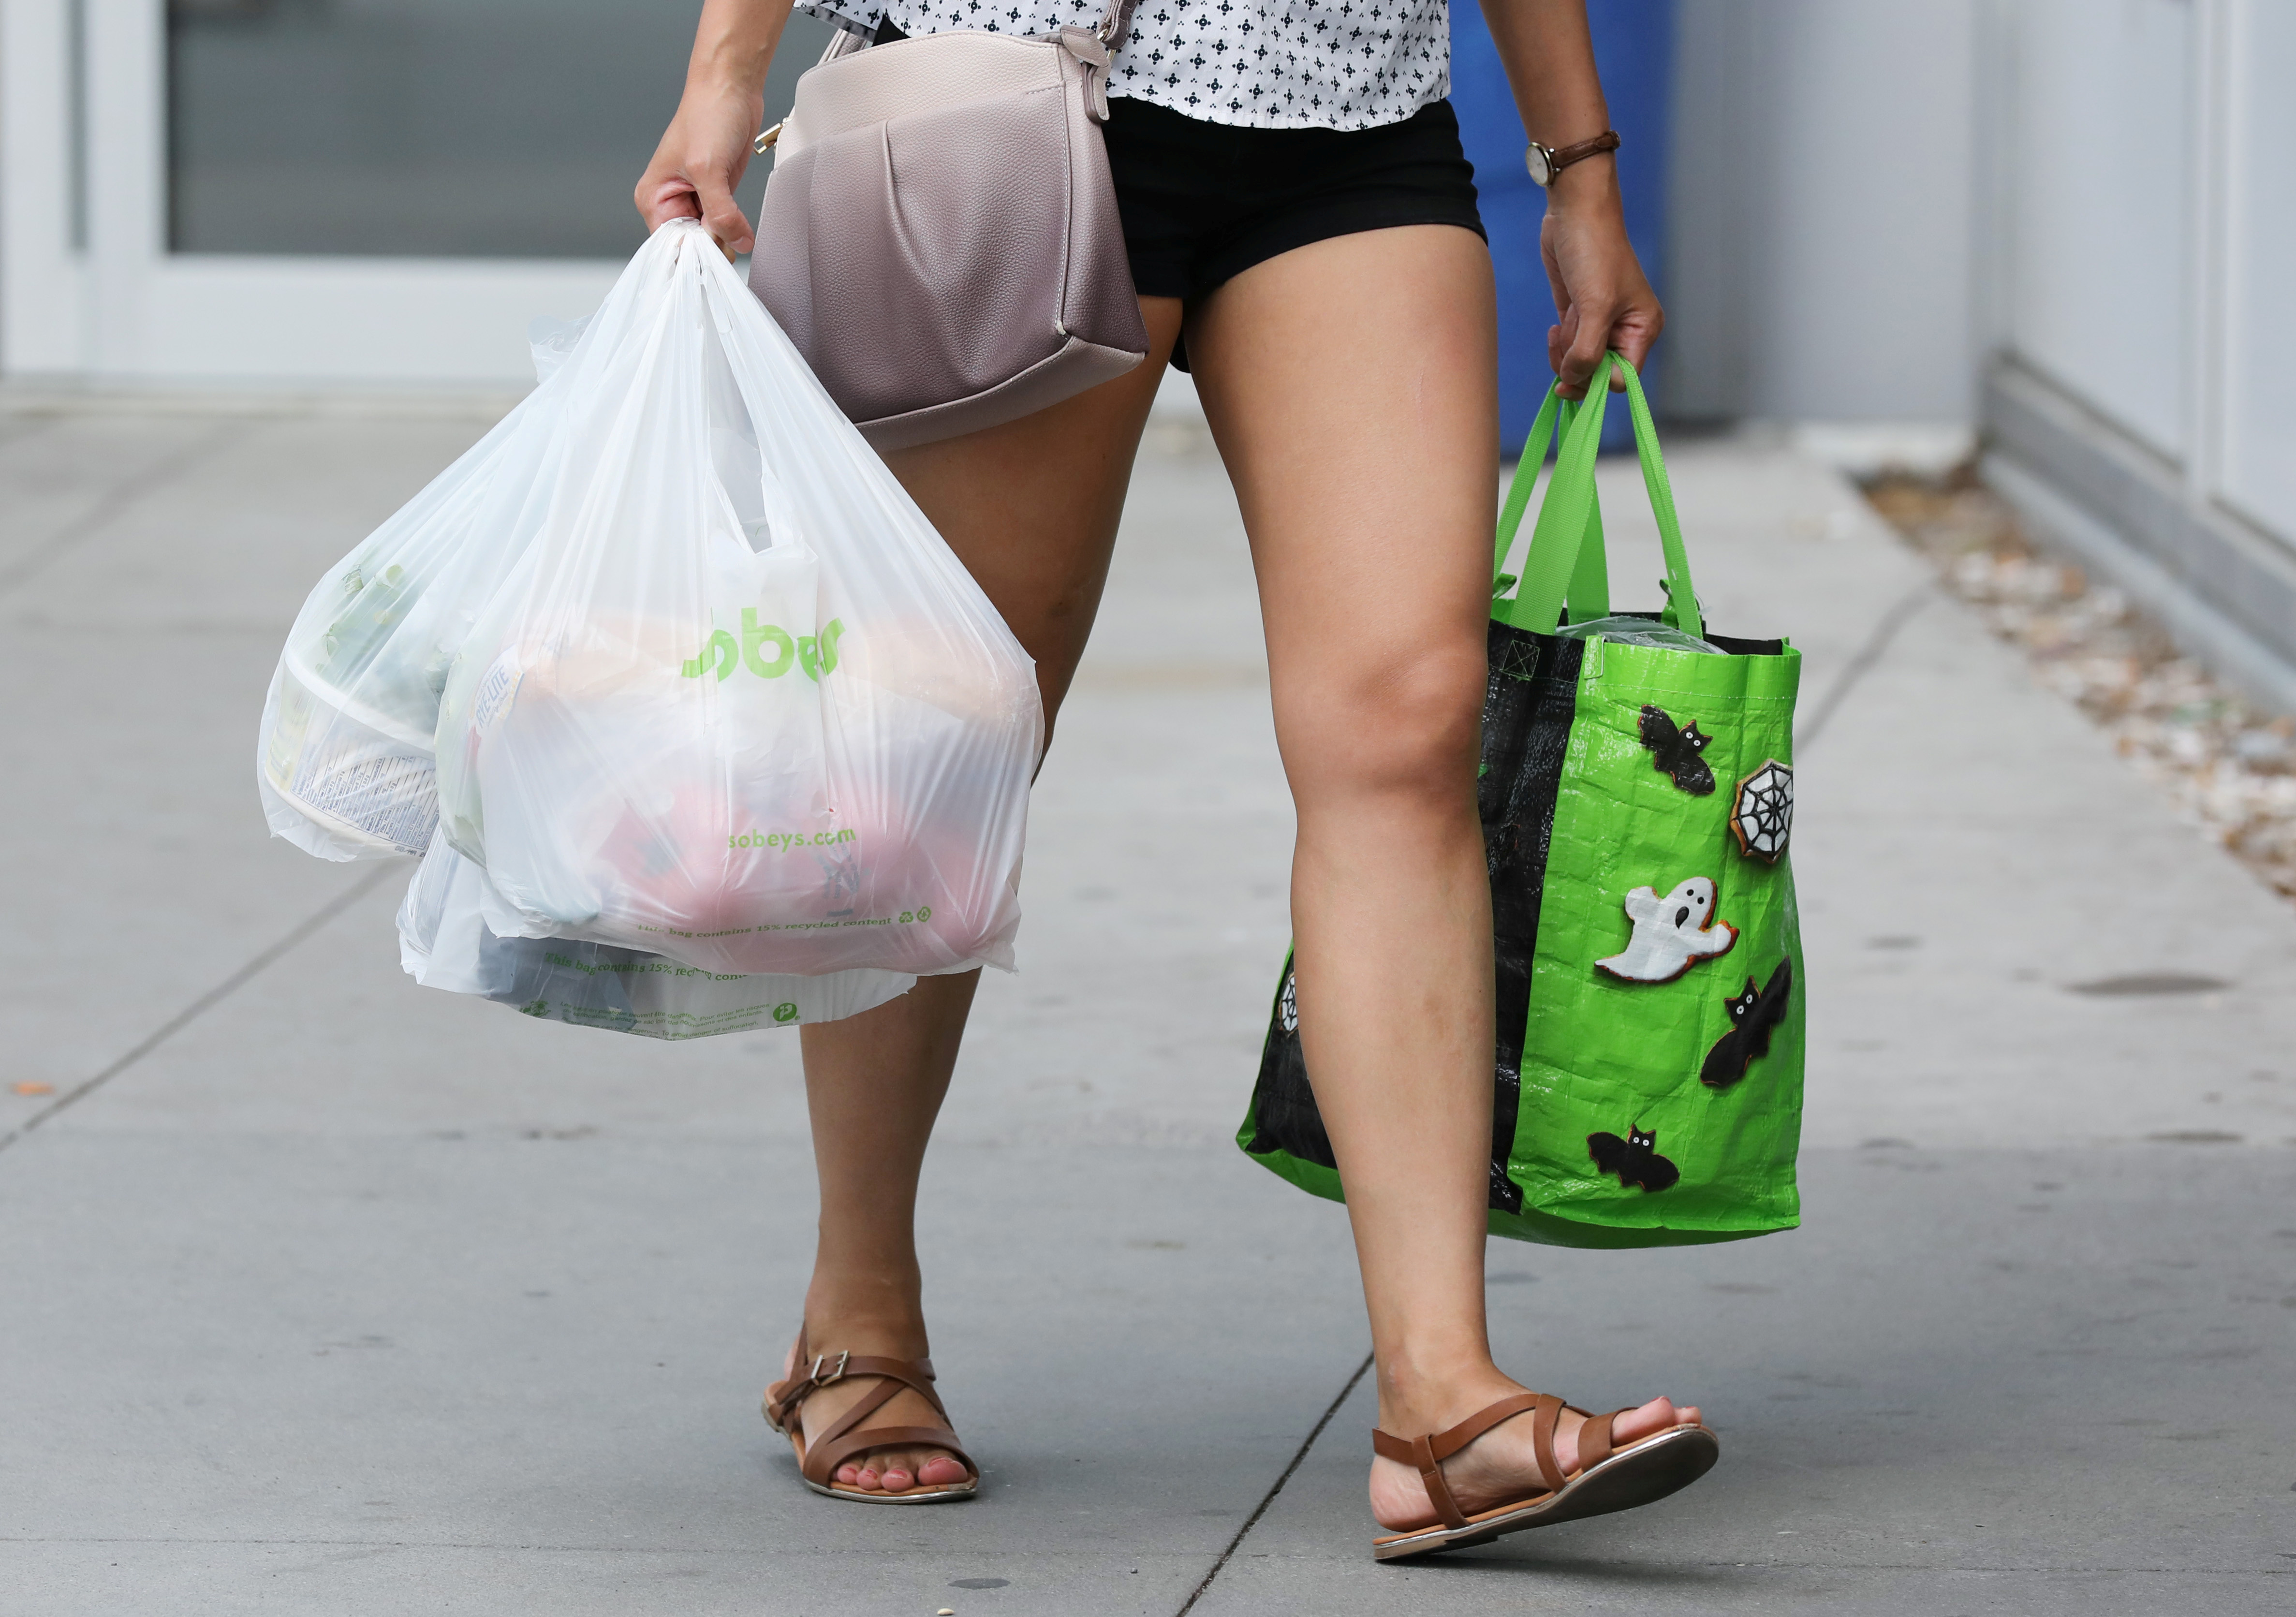 Reusable plastic shopping bags are actually making the problem worse, not better